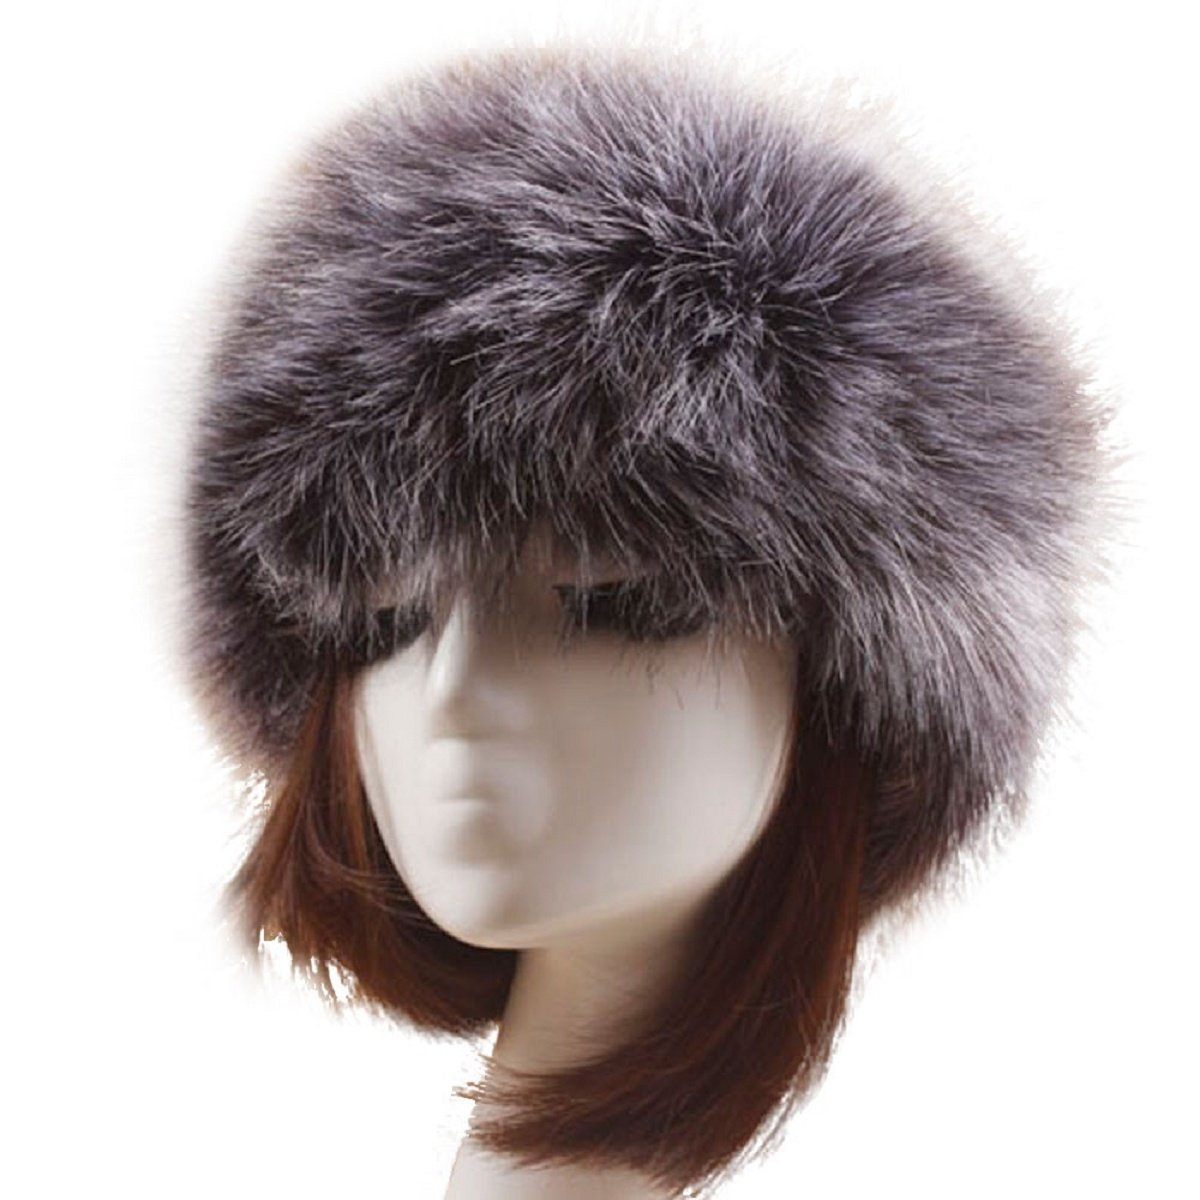 TAORE Womens Winter Hat Faux Fur Headband Cap Headgear Earwarmer Earmuff  Snow Hat (Gray) at Amazon Women s Clothing store  0fd42dd65ab7